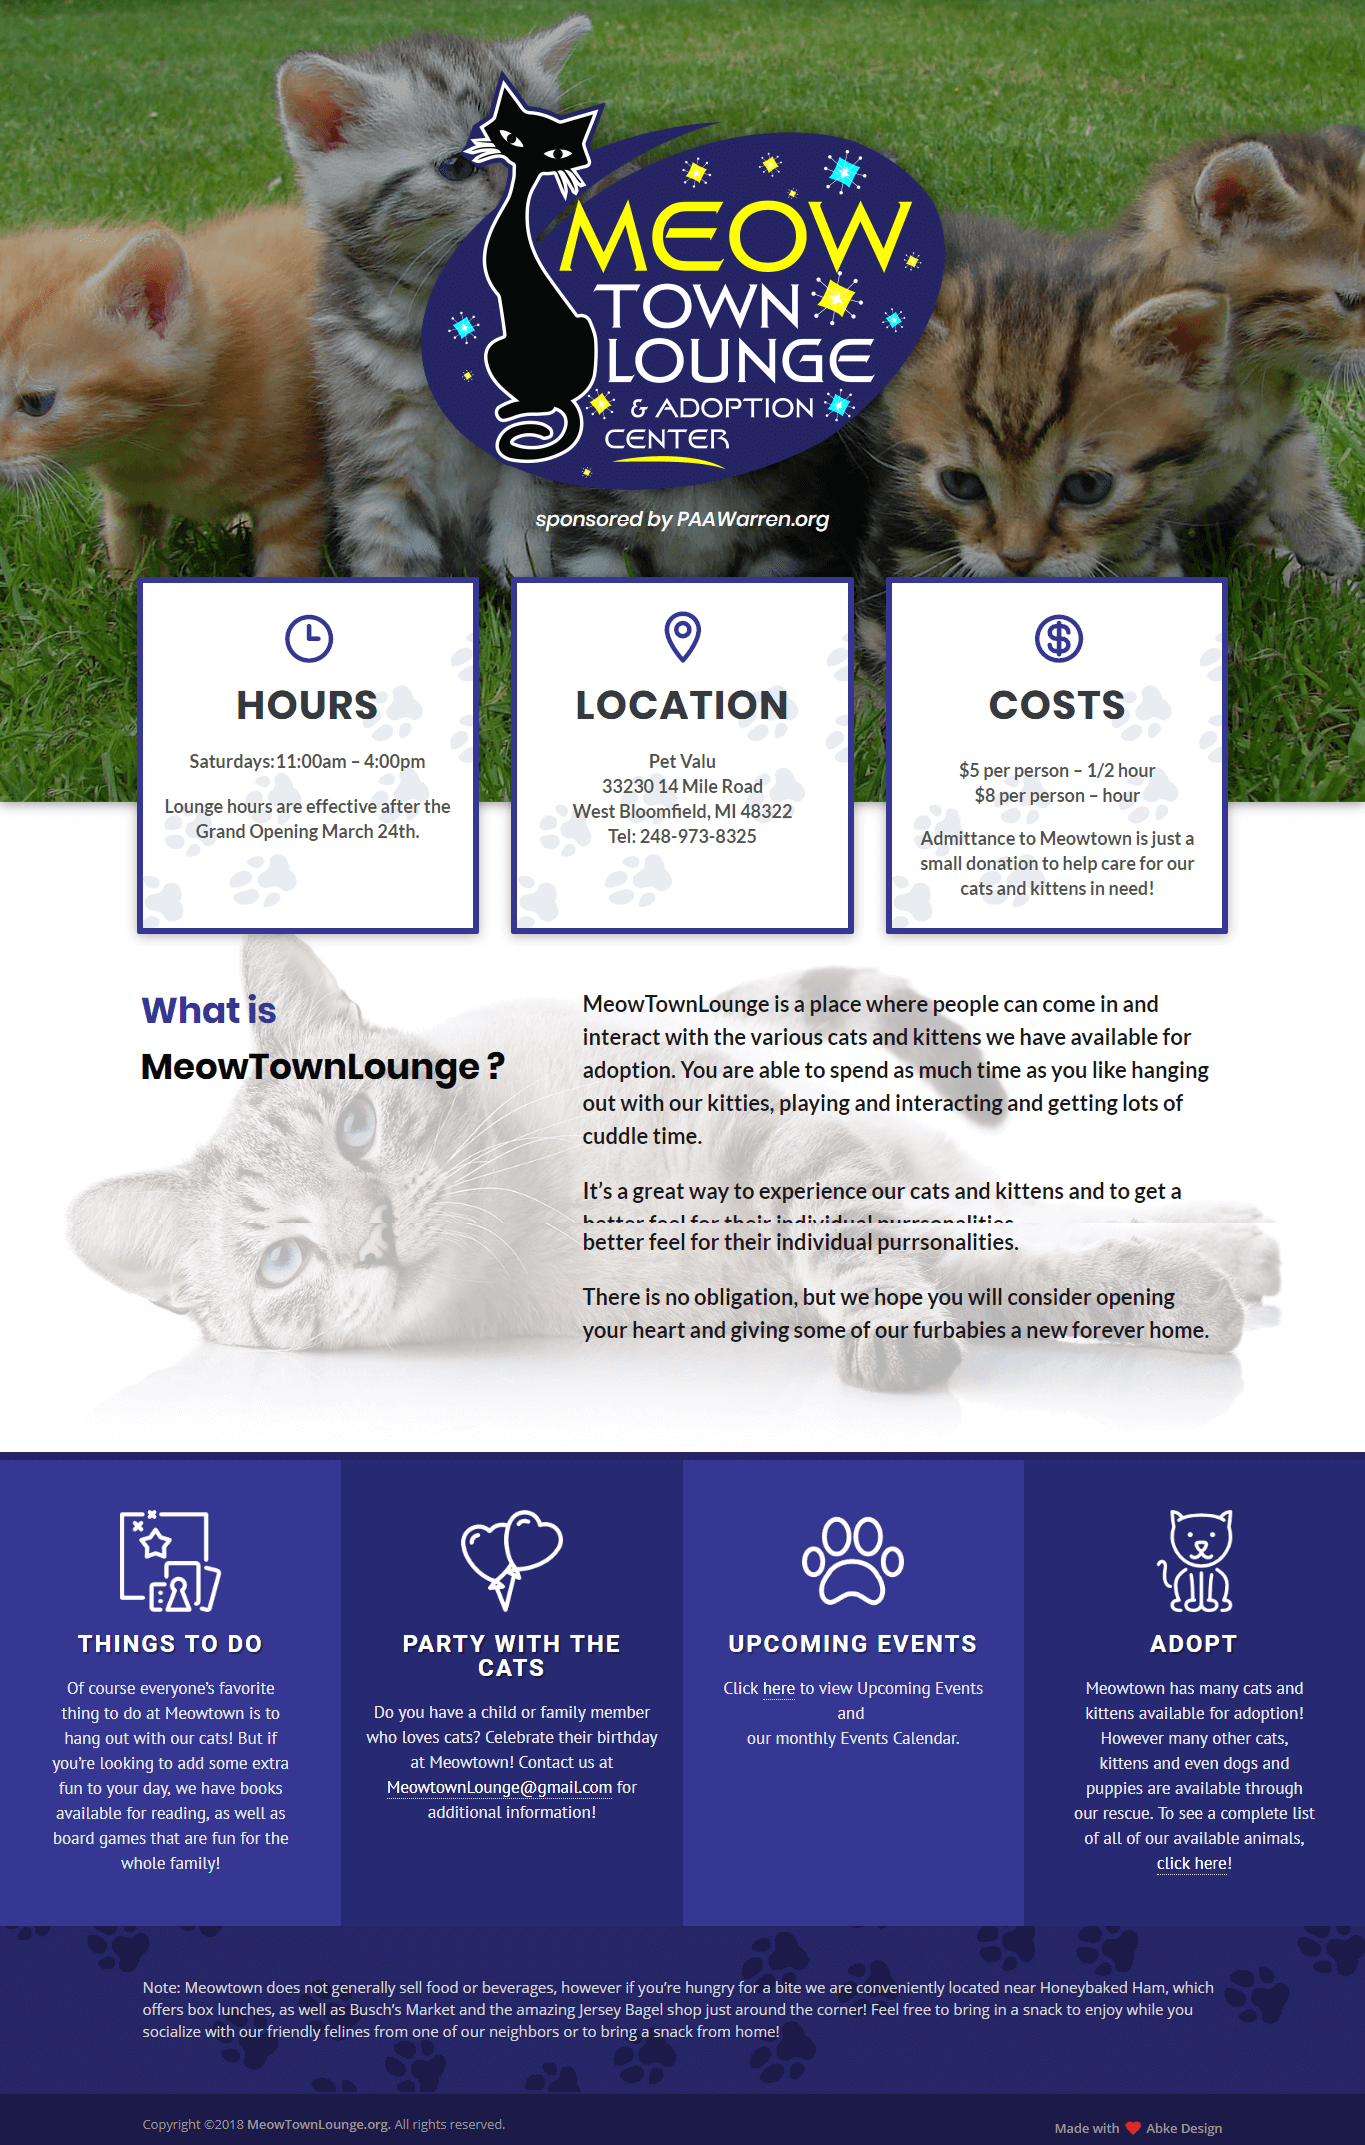 Meow Town Lounge - Web Design & Development in Michigan